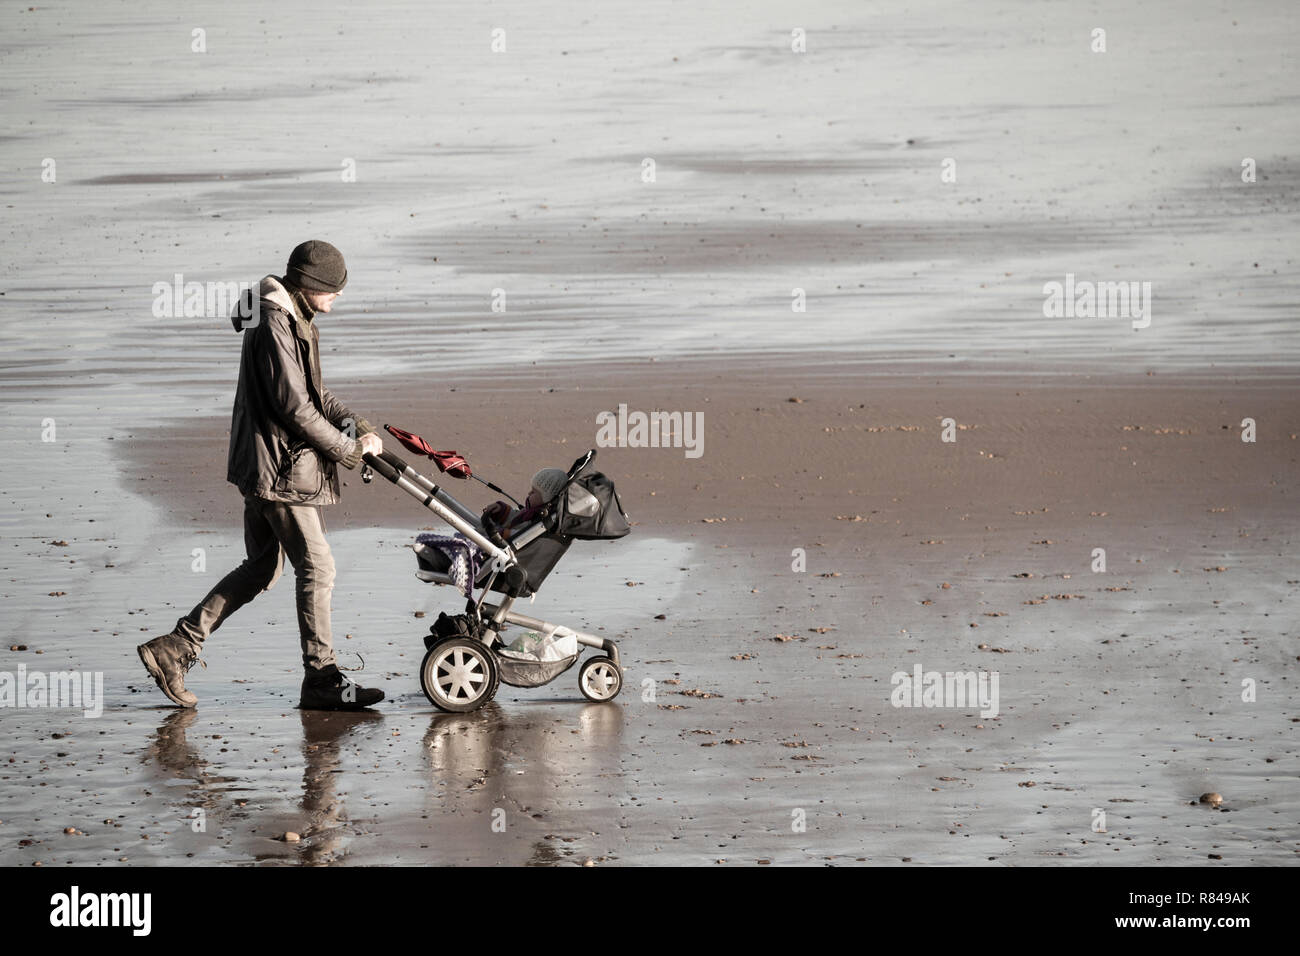 Man walking on beach pushing pushchair/pram.UK - Stock Image